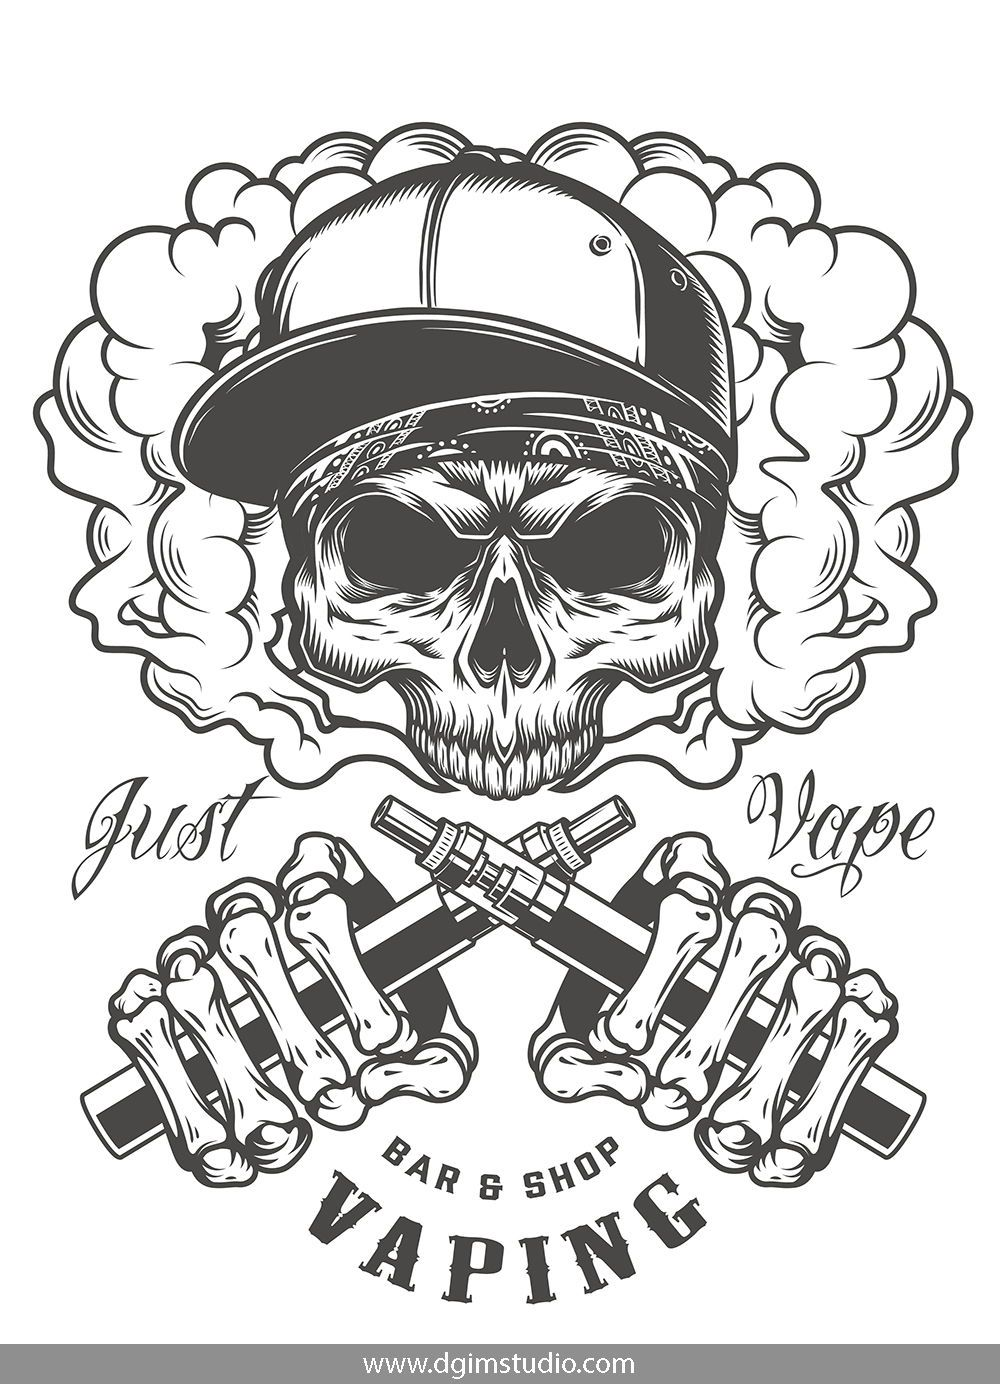 Skull creator Skull illustration, Vape, Skull design